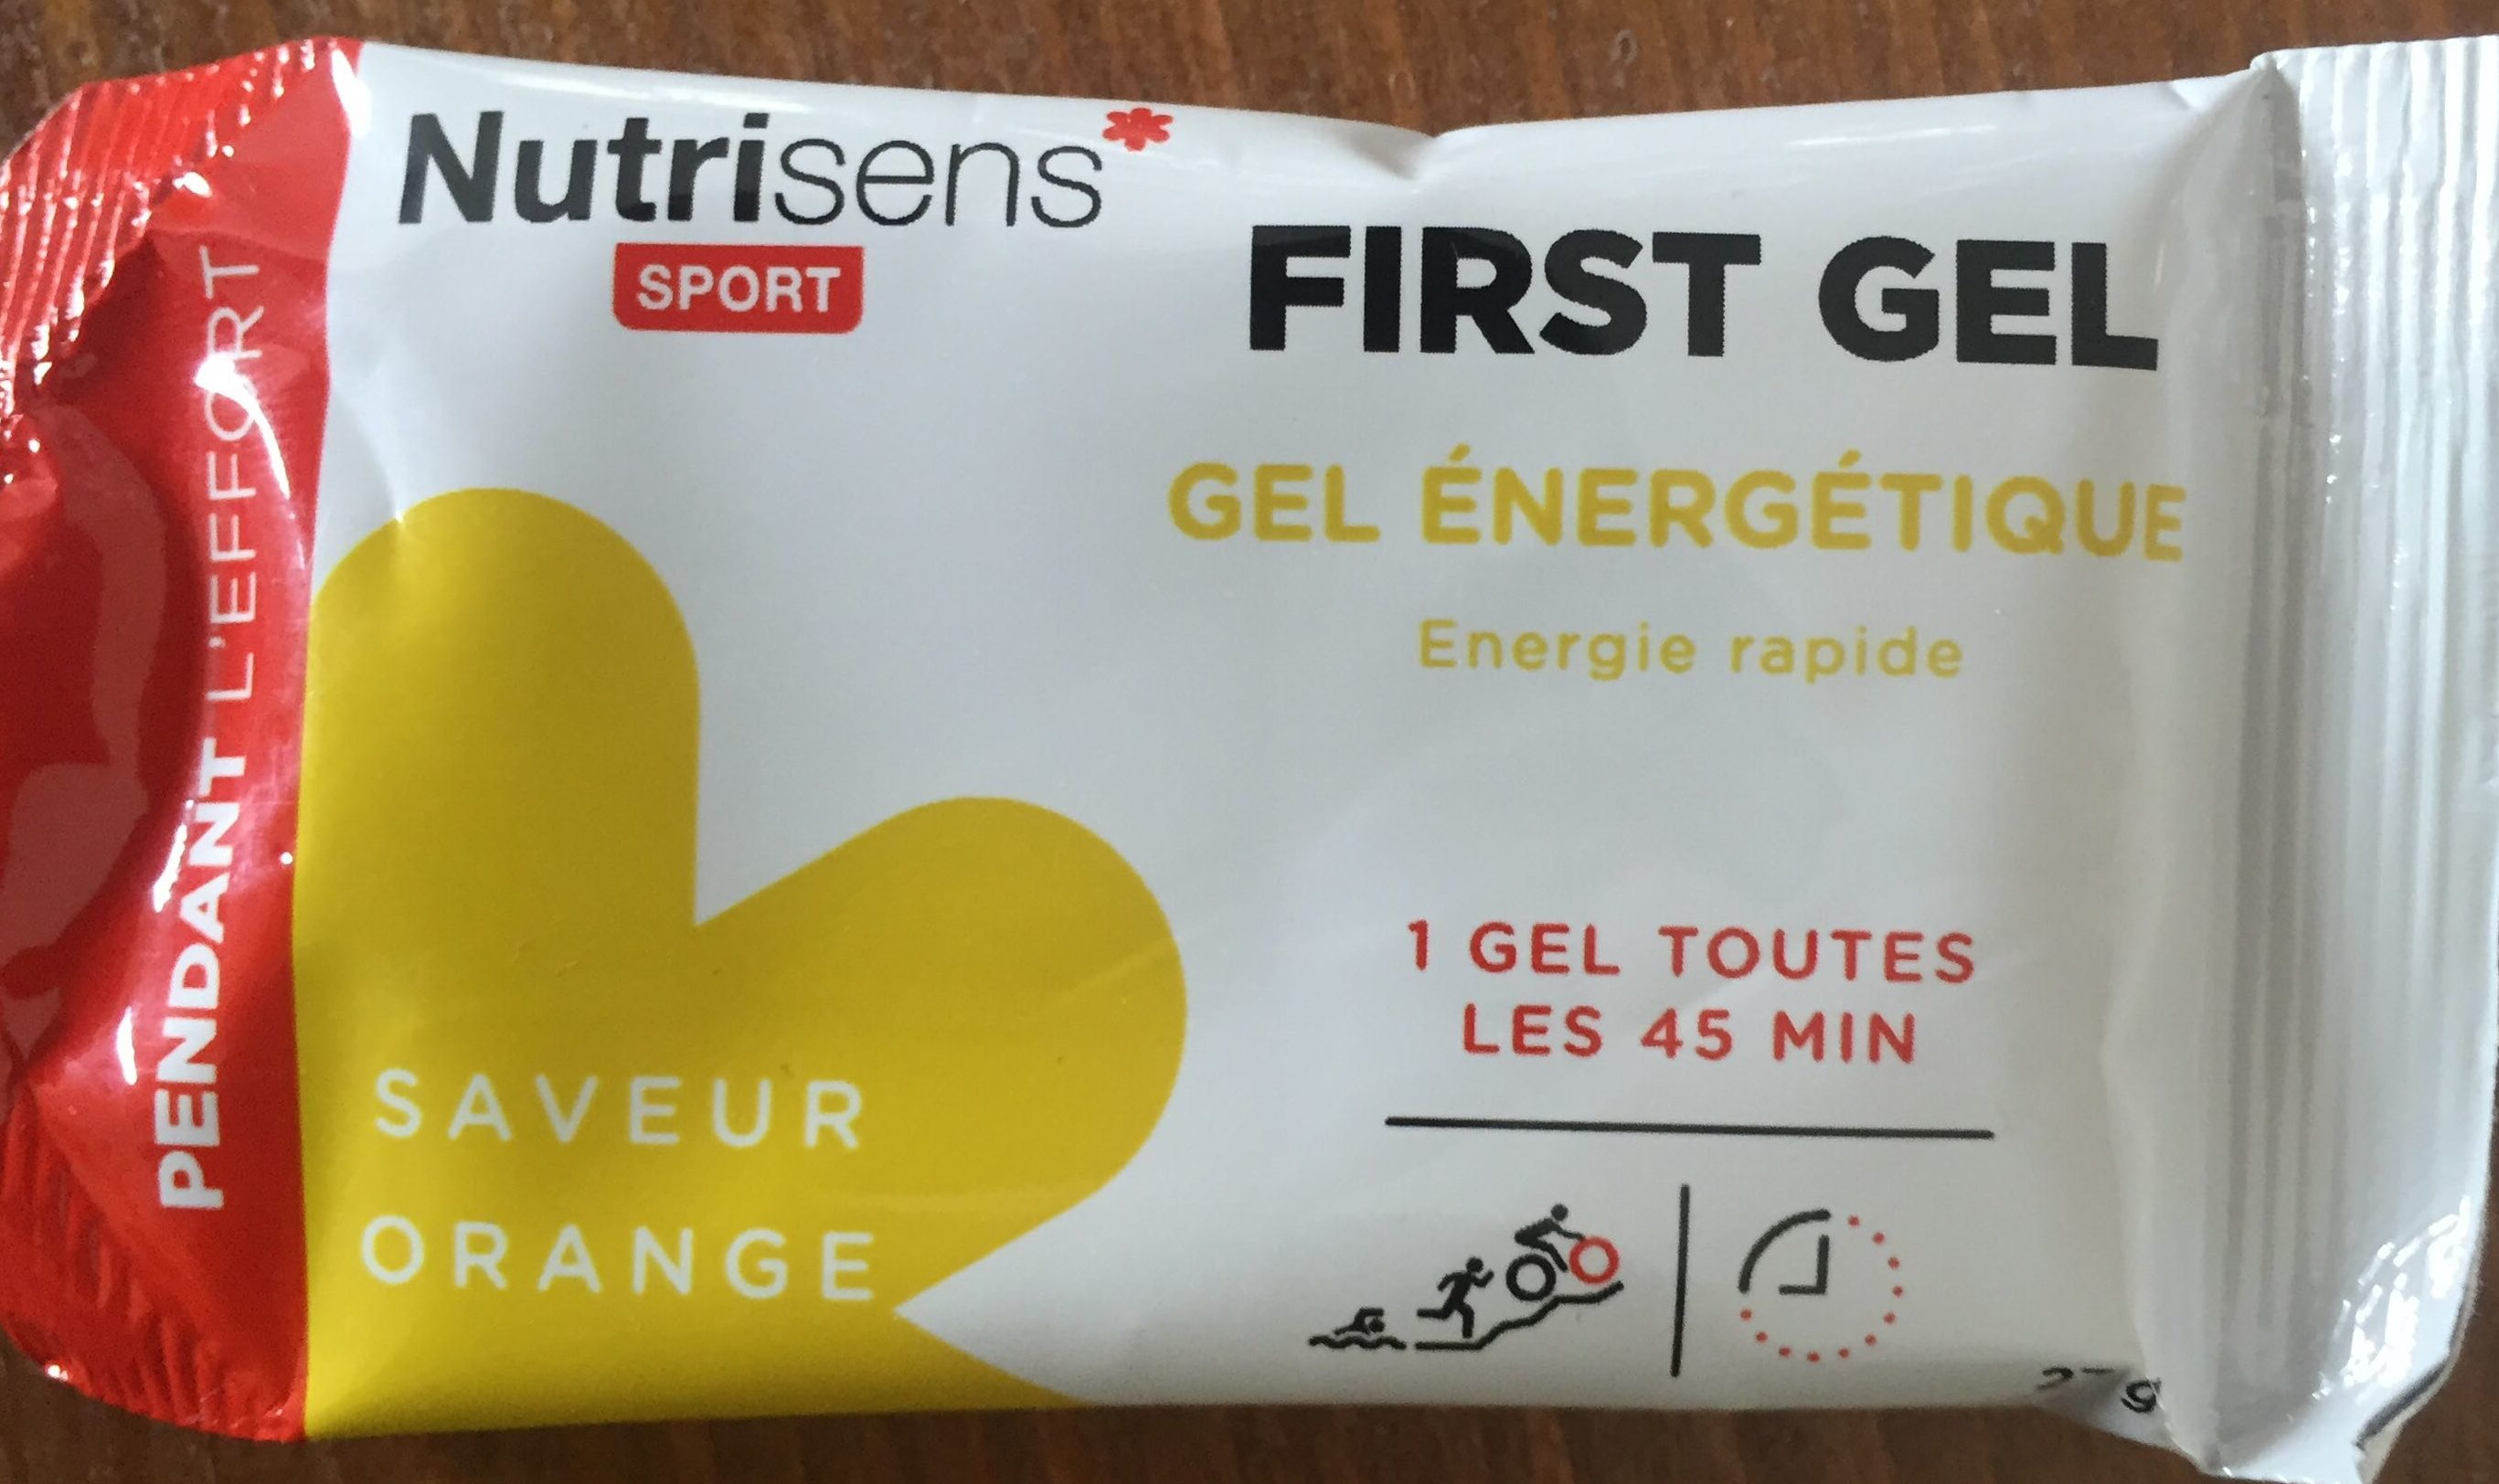 First Gel saveur Orange - Product